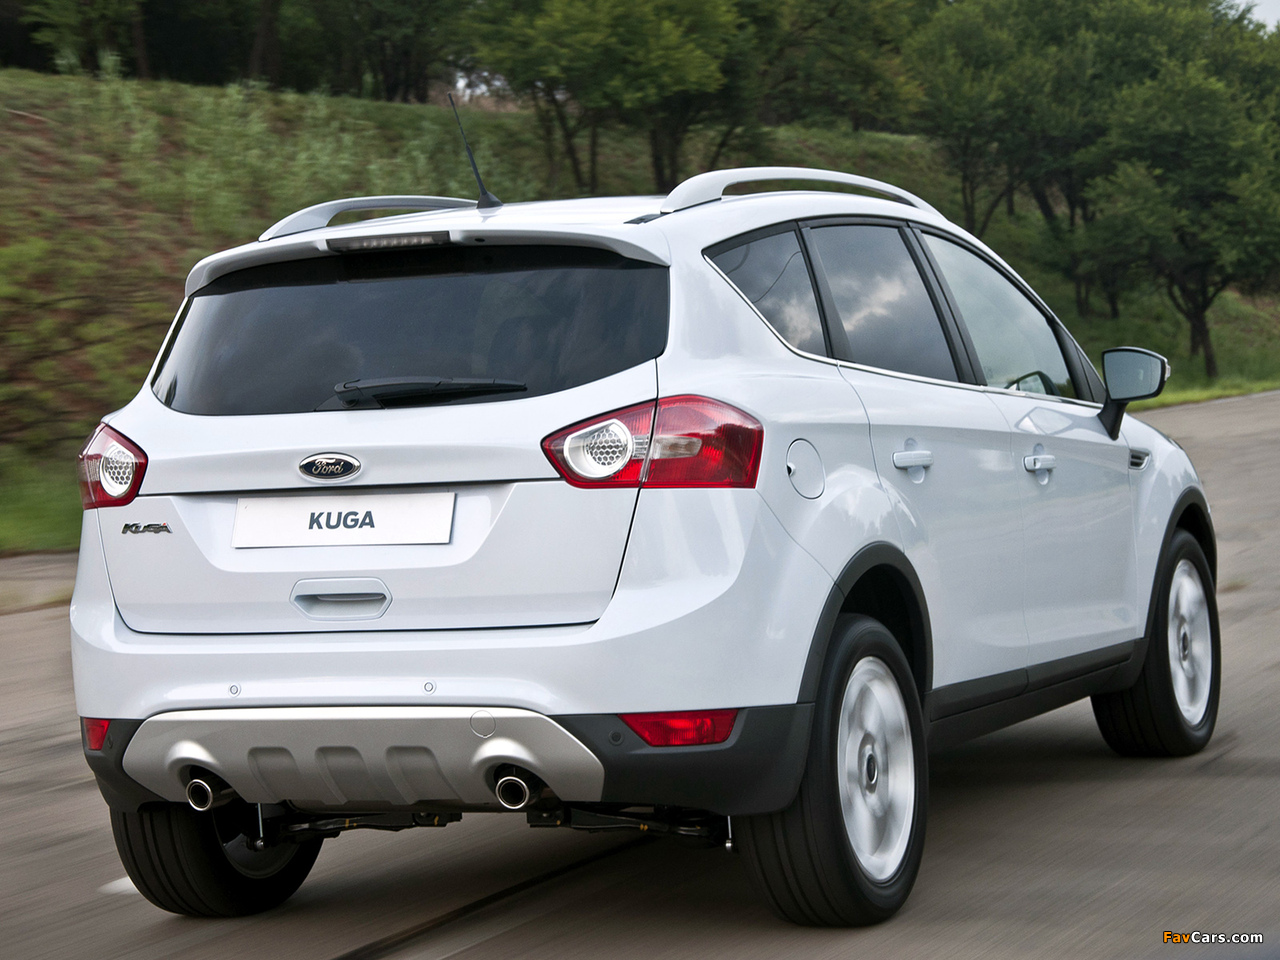 pictures of ford kuga titanium s za spec 2011 1280x960. Black Bedroom Furniture Sets. Home Design Ideas